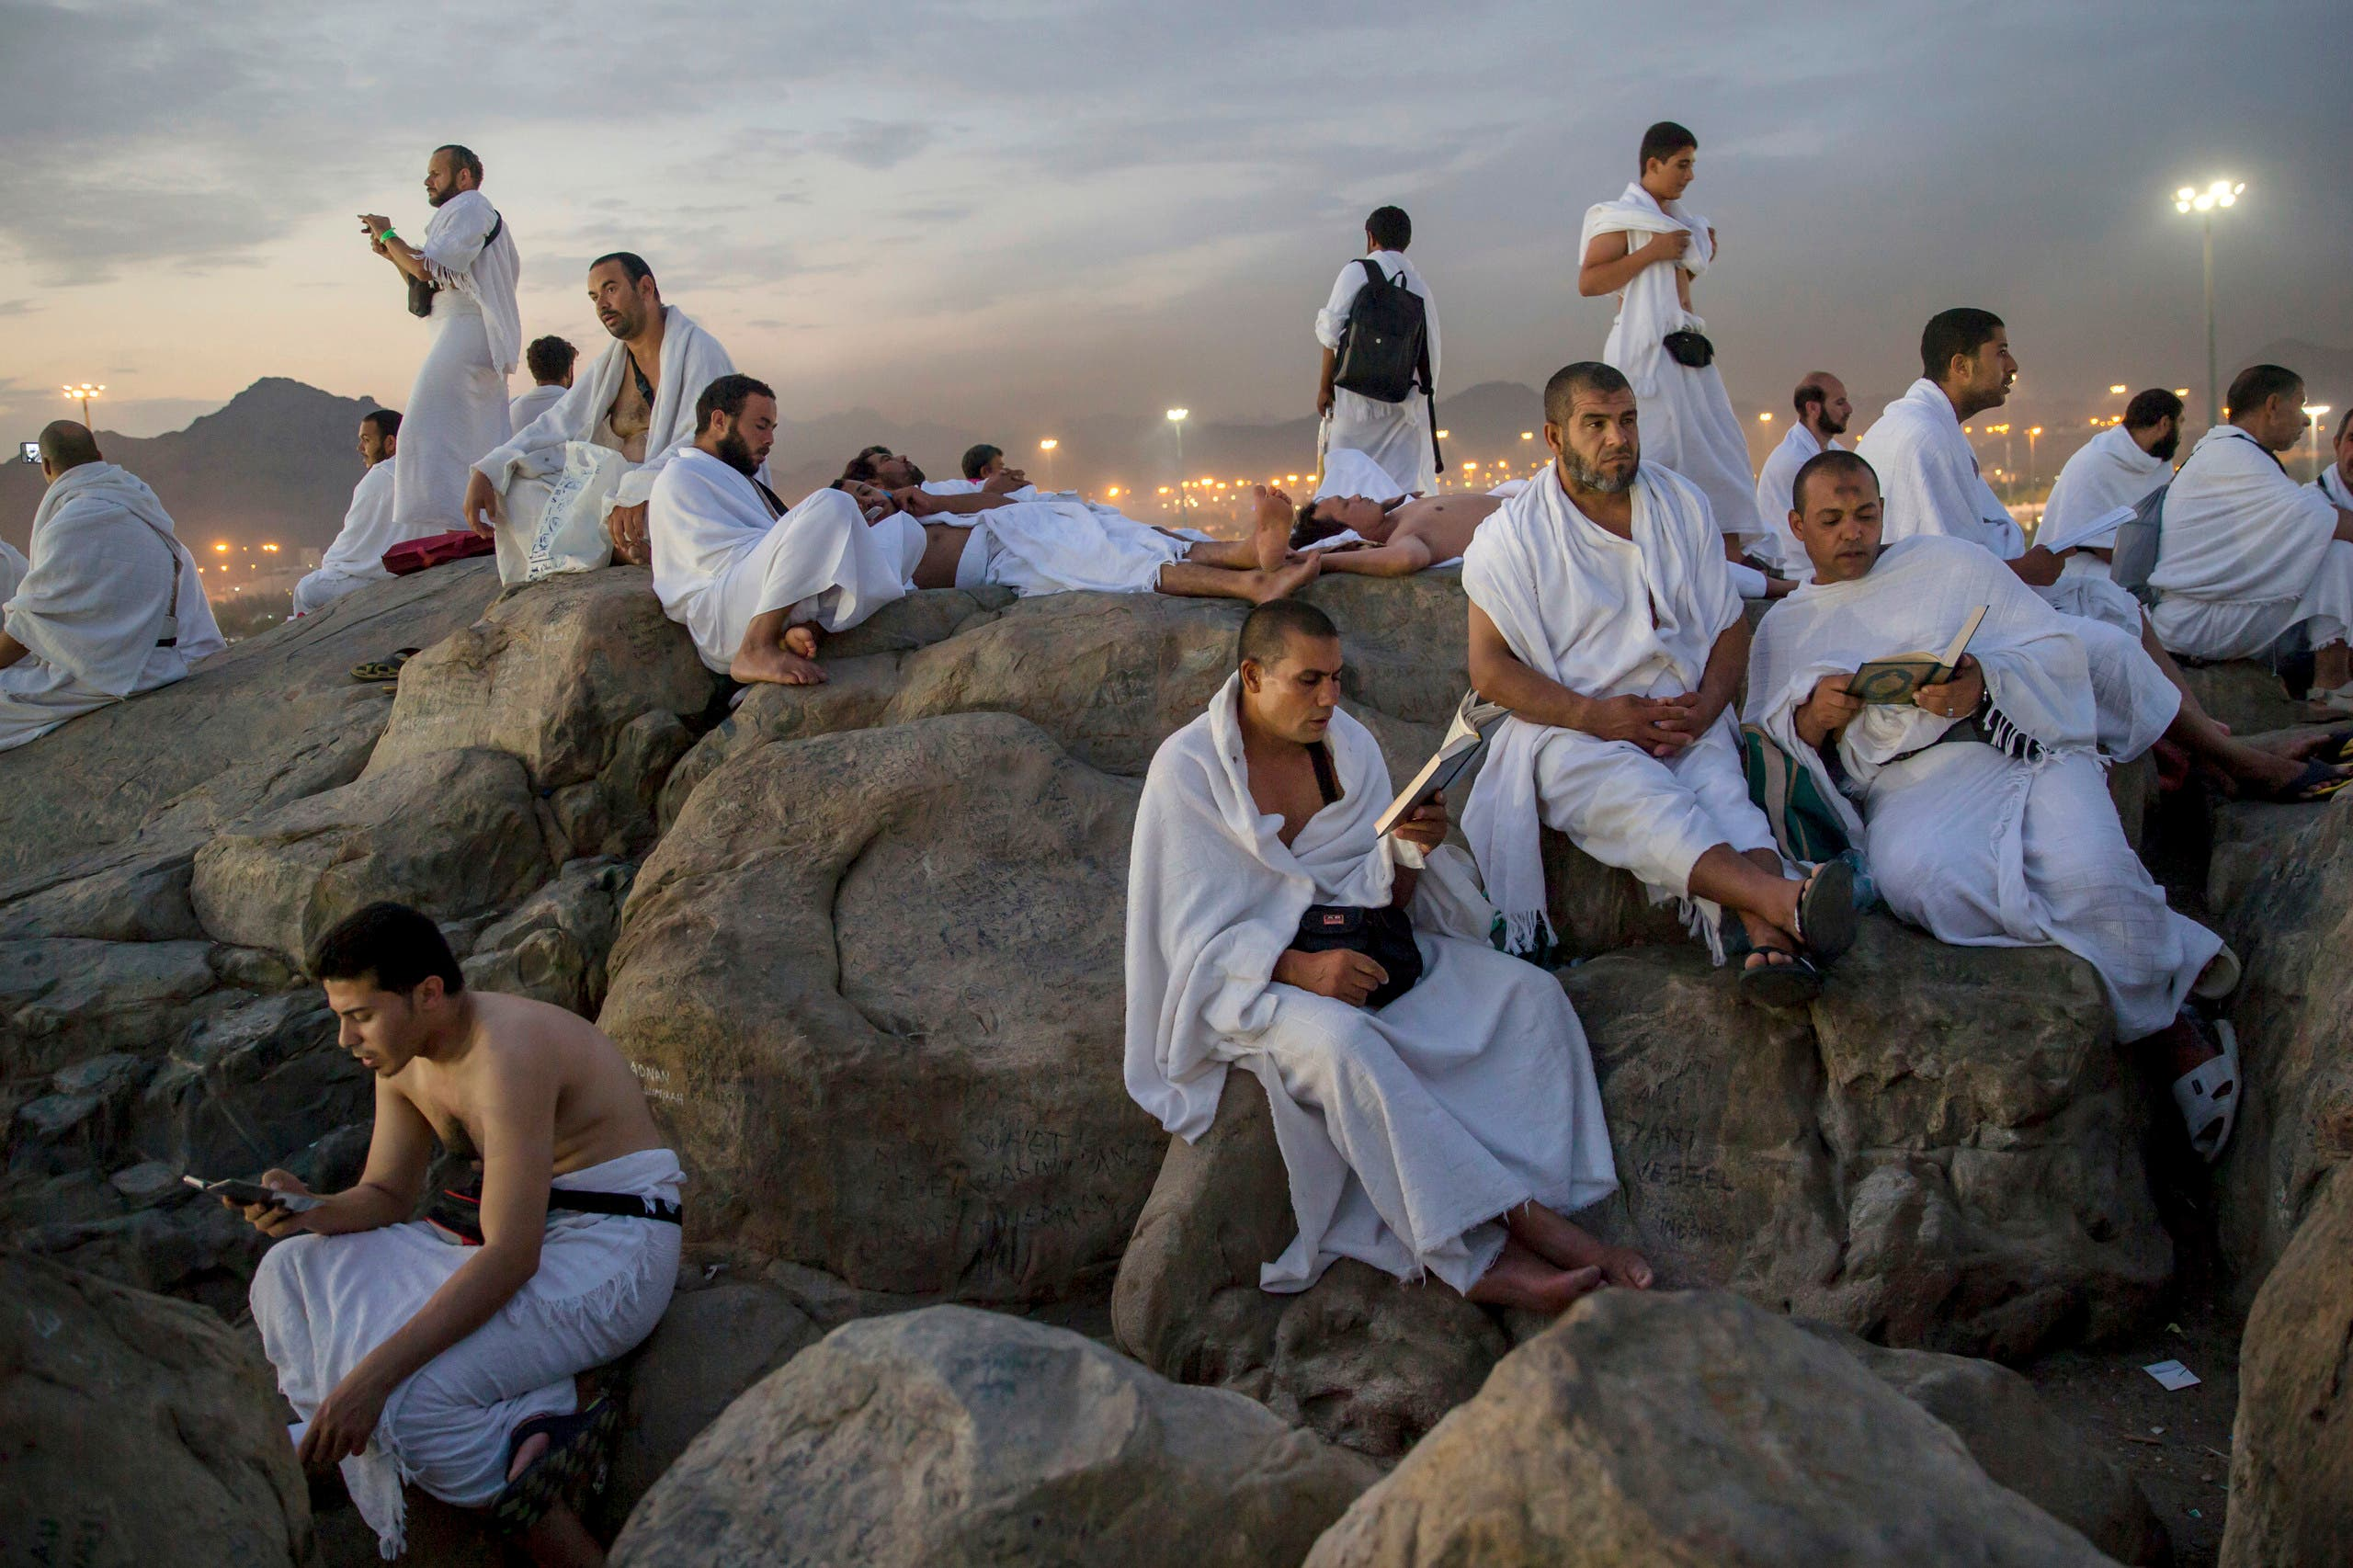 Muslim pilgrims pray on the Jabal Al Rahma holy mountain, or the mountain of forgiveness, at Arafat for the annual hajj pilgrimage outside the holy city of Mecca (AP)